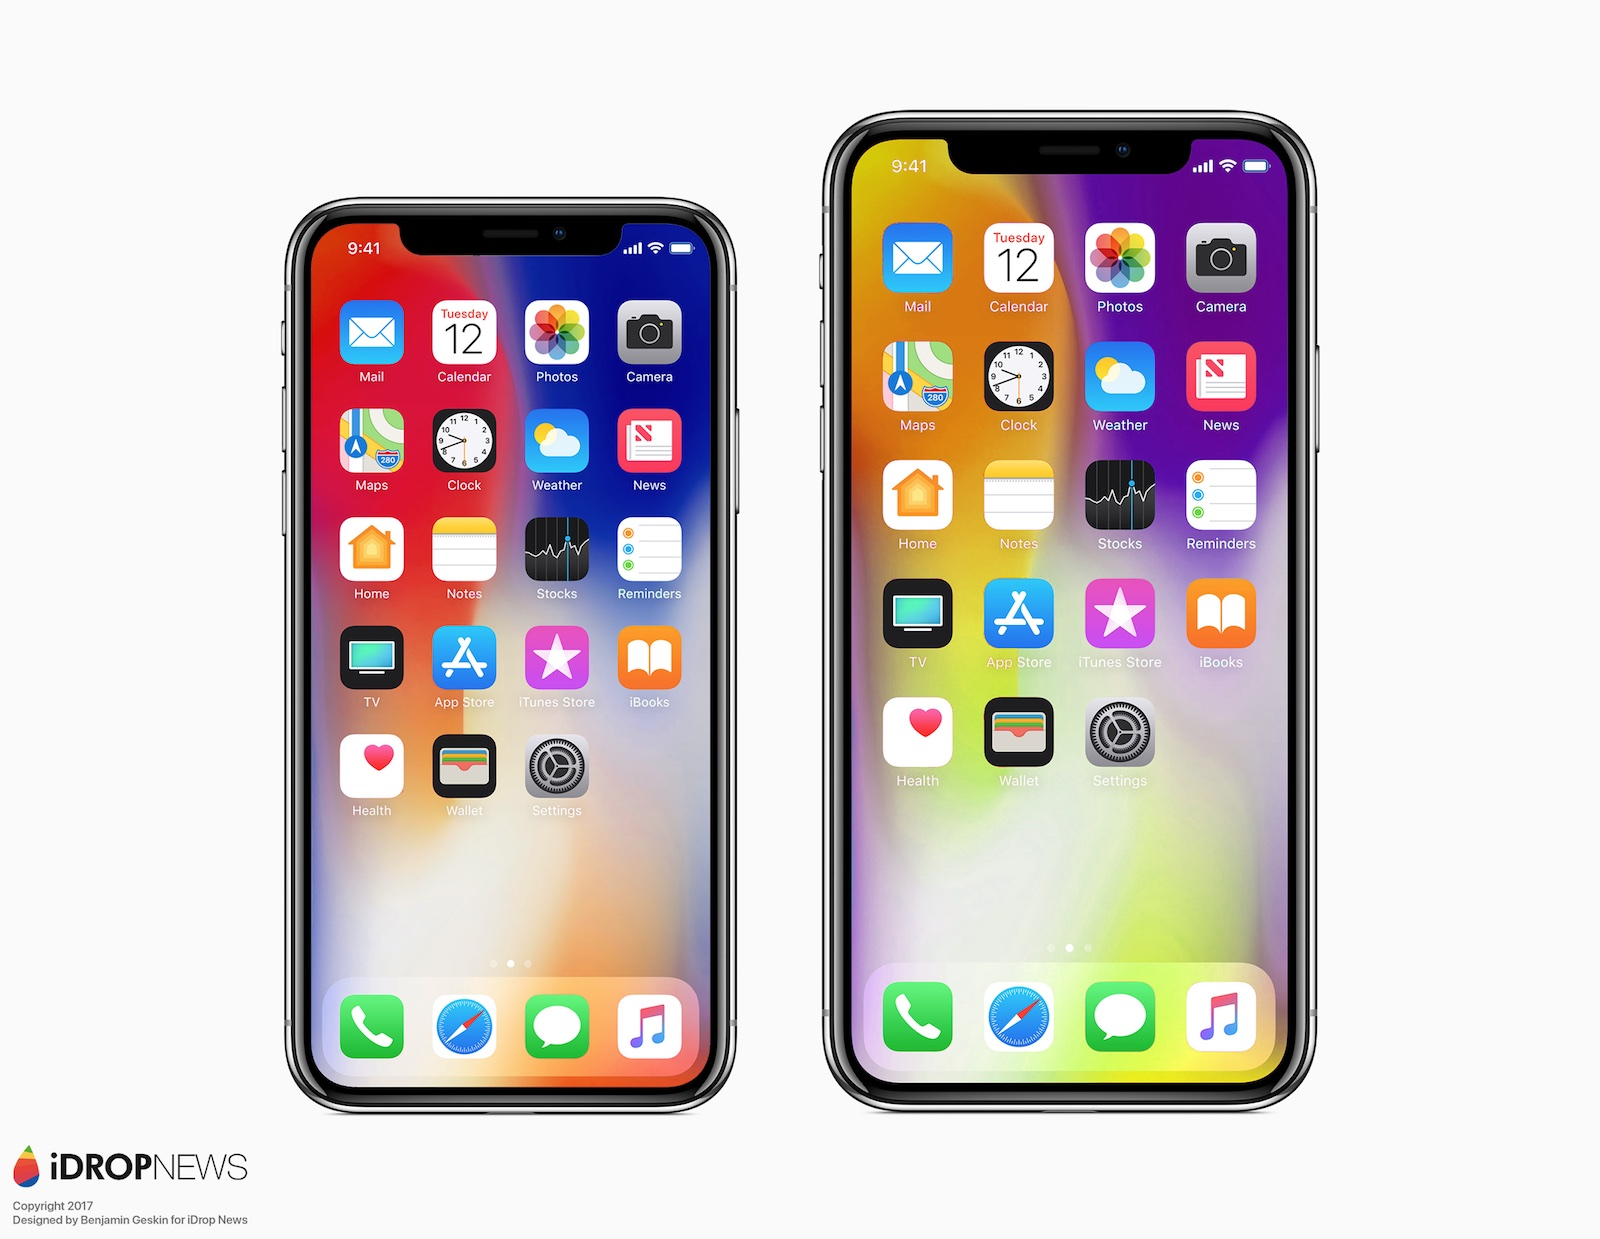 KGI's Kuo Says 2018 6.1-inch iPhone May Lack 3D Touch in Favor of Improved Glass